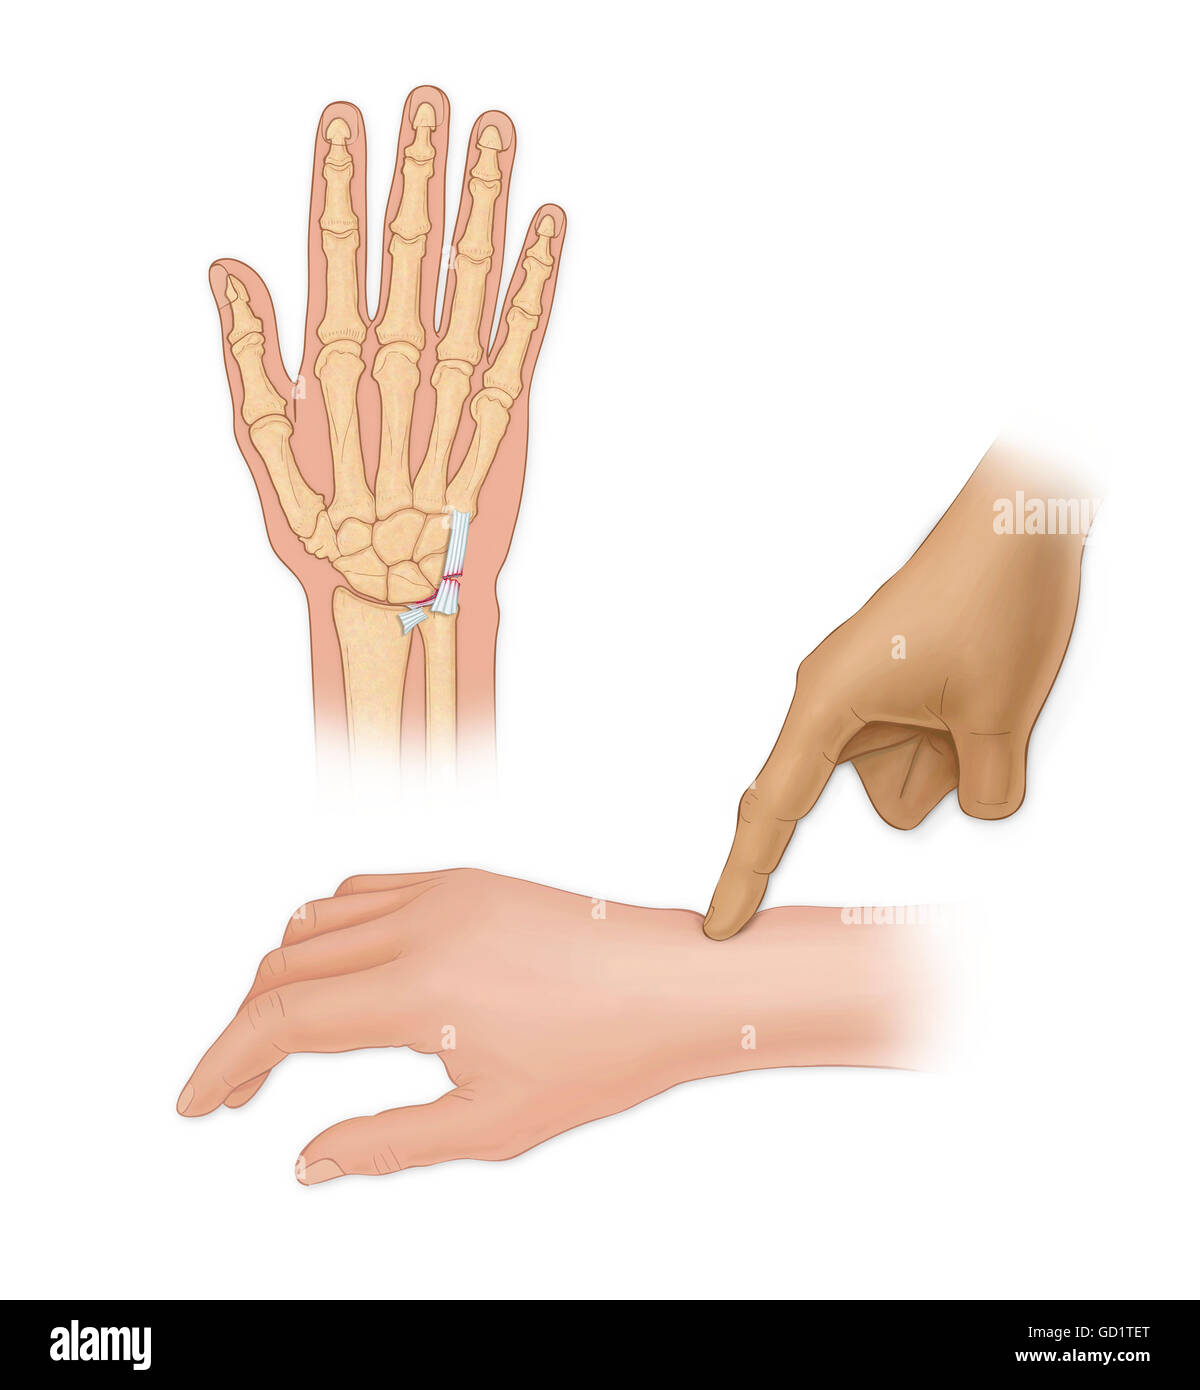 Hand bones with injury and finger pointing to wrist Stock Photo ...